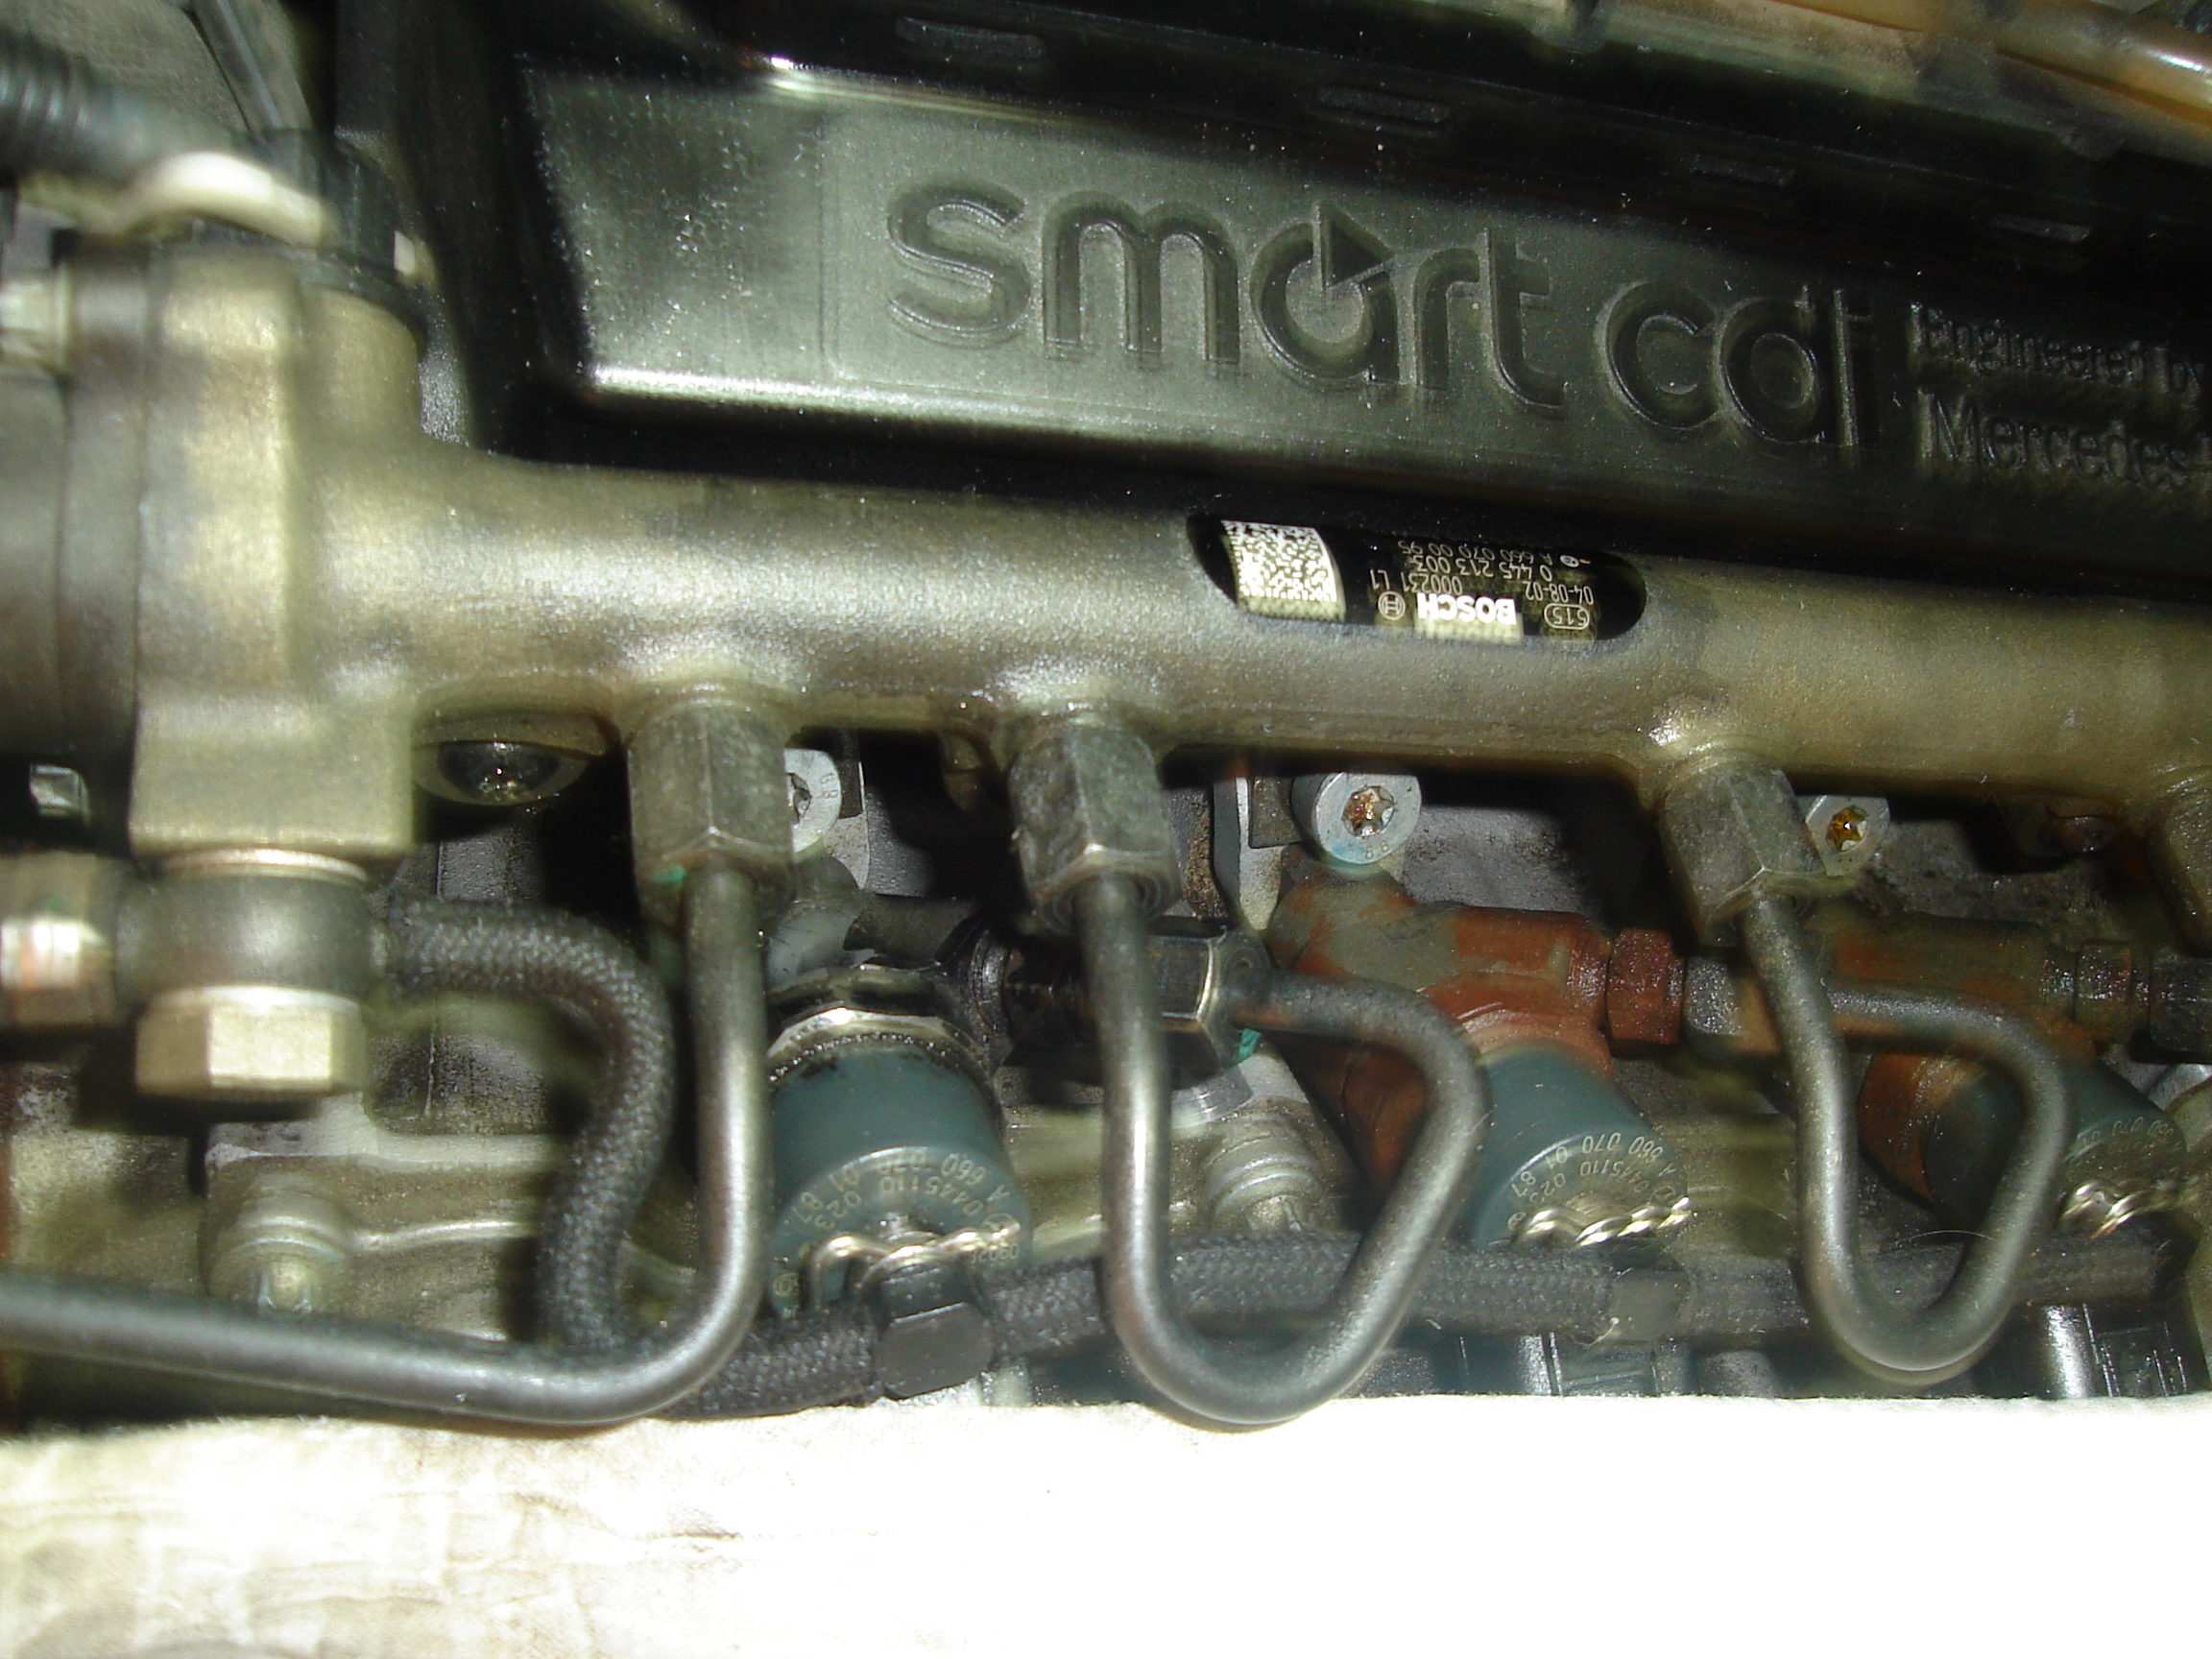 Replace Injectors How To 450 Model 2005 2006 Diesel Club 2008 Smart Car Fuse Box Post 35 1201062466 Thumb